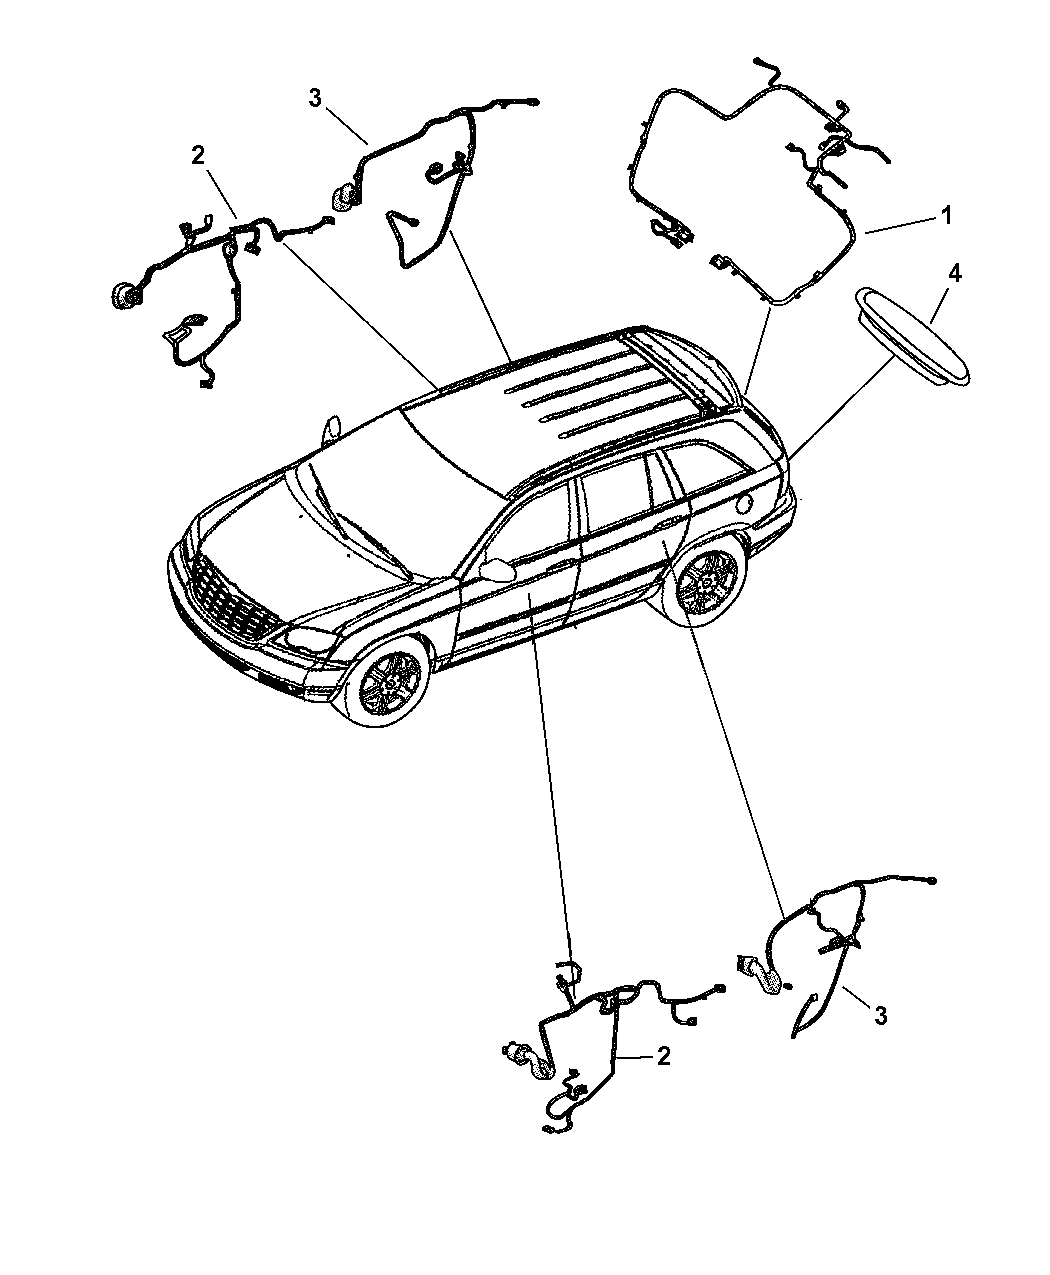 2005 Chrysler Pacifica Wiring